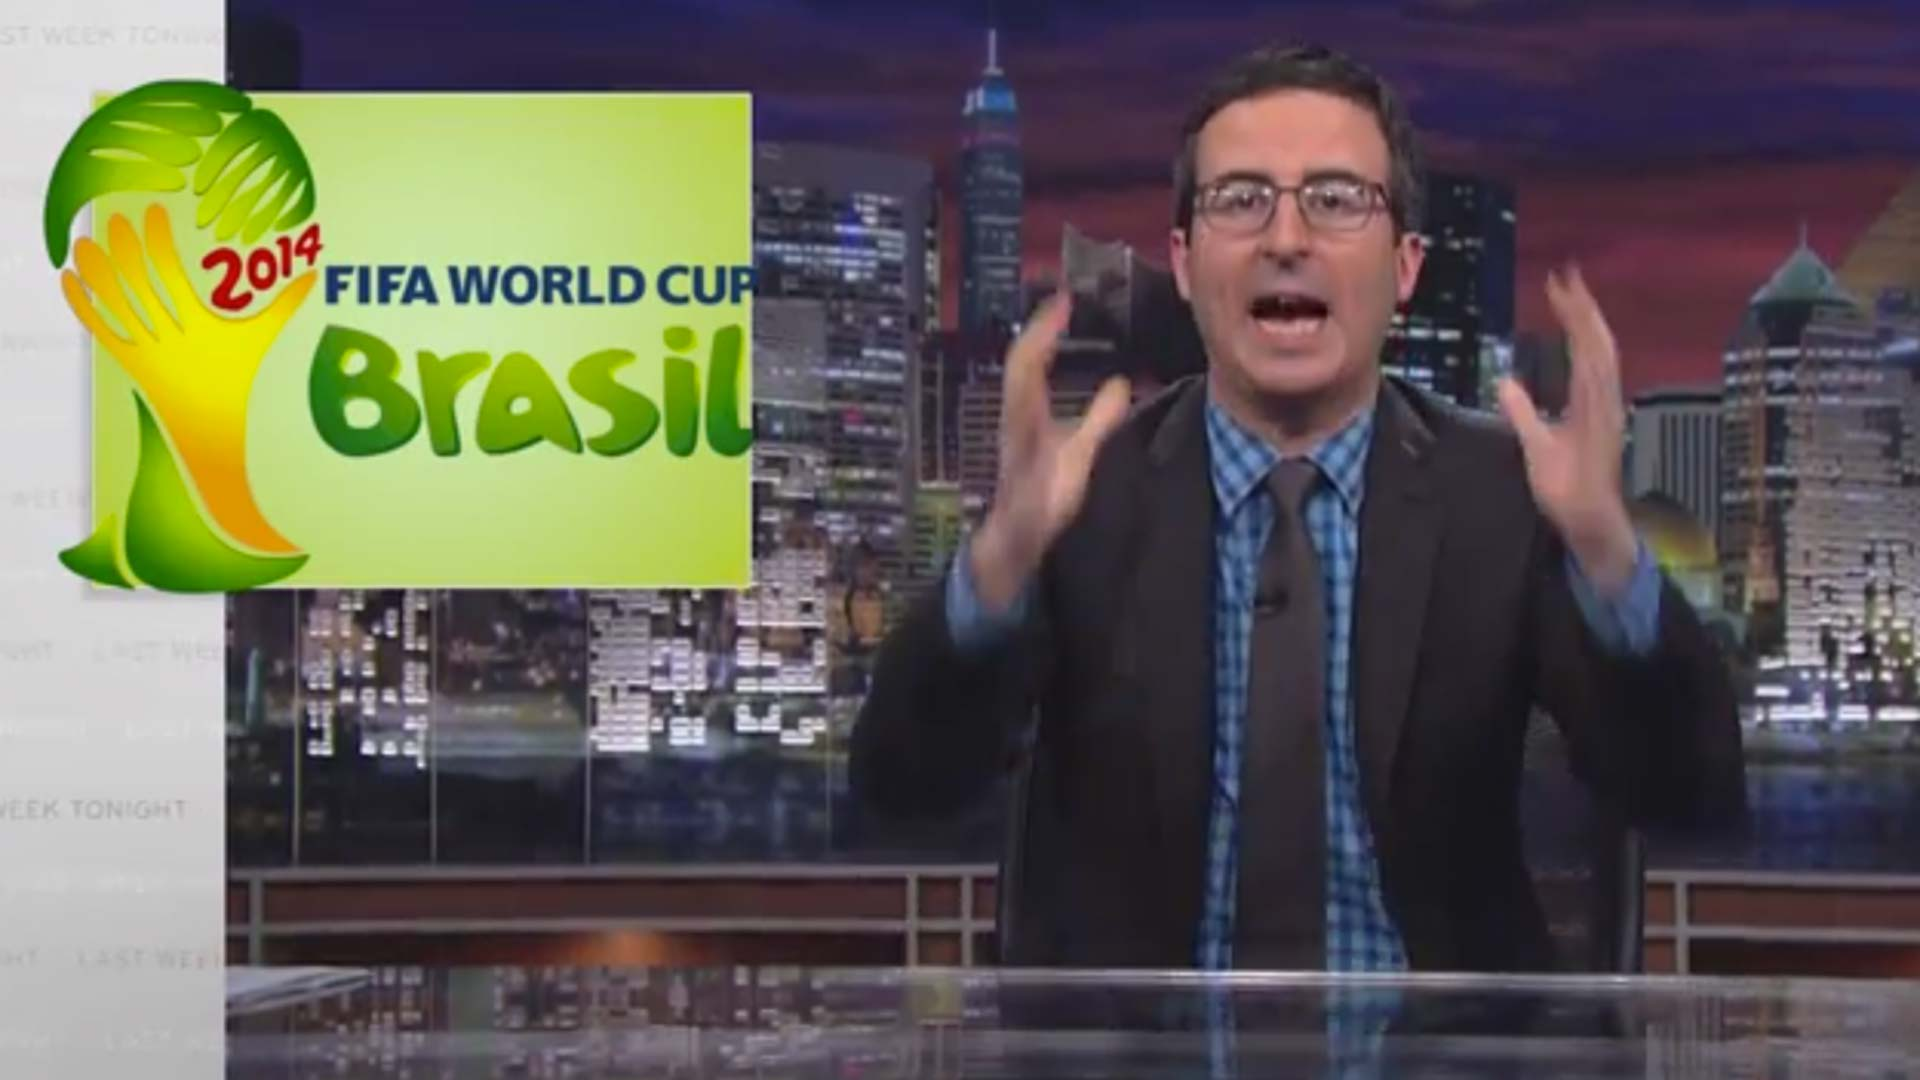 john-oliver-060914-ftr-ytjpg_dnz27k4aw5q91wummtl51pcbz Fifa And The World Cup Last Week Tonight With John Oliver